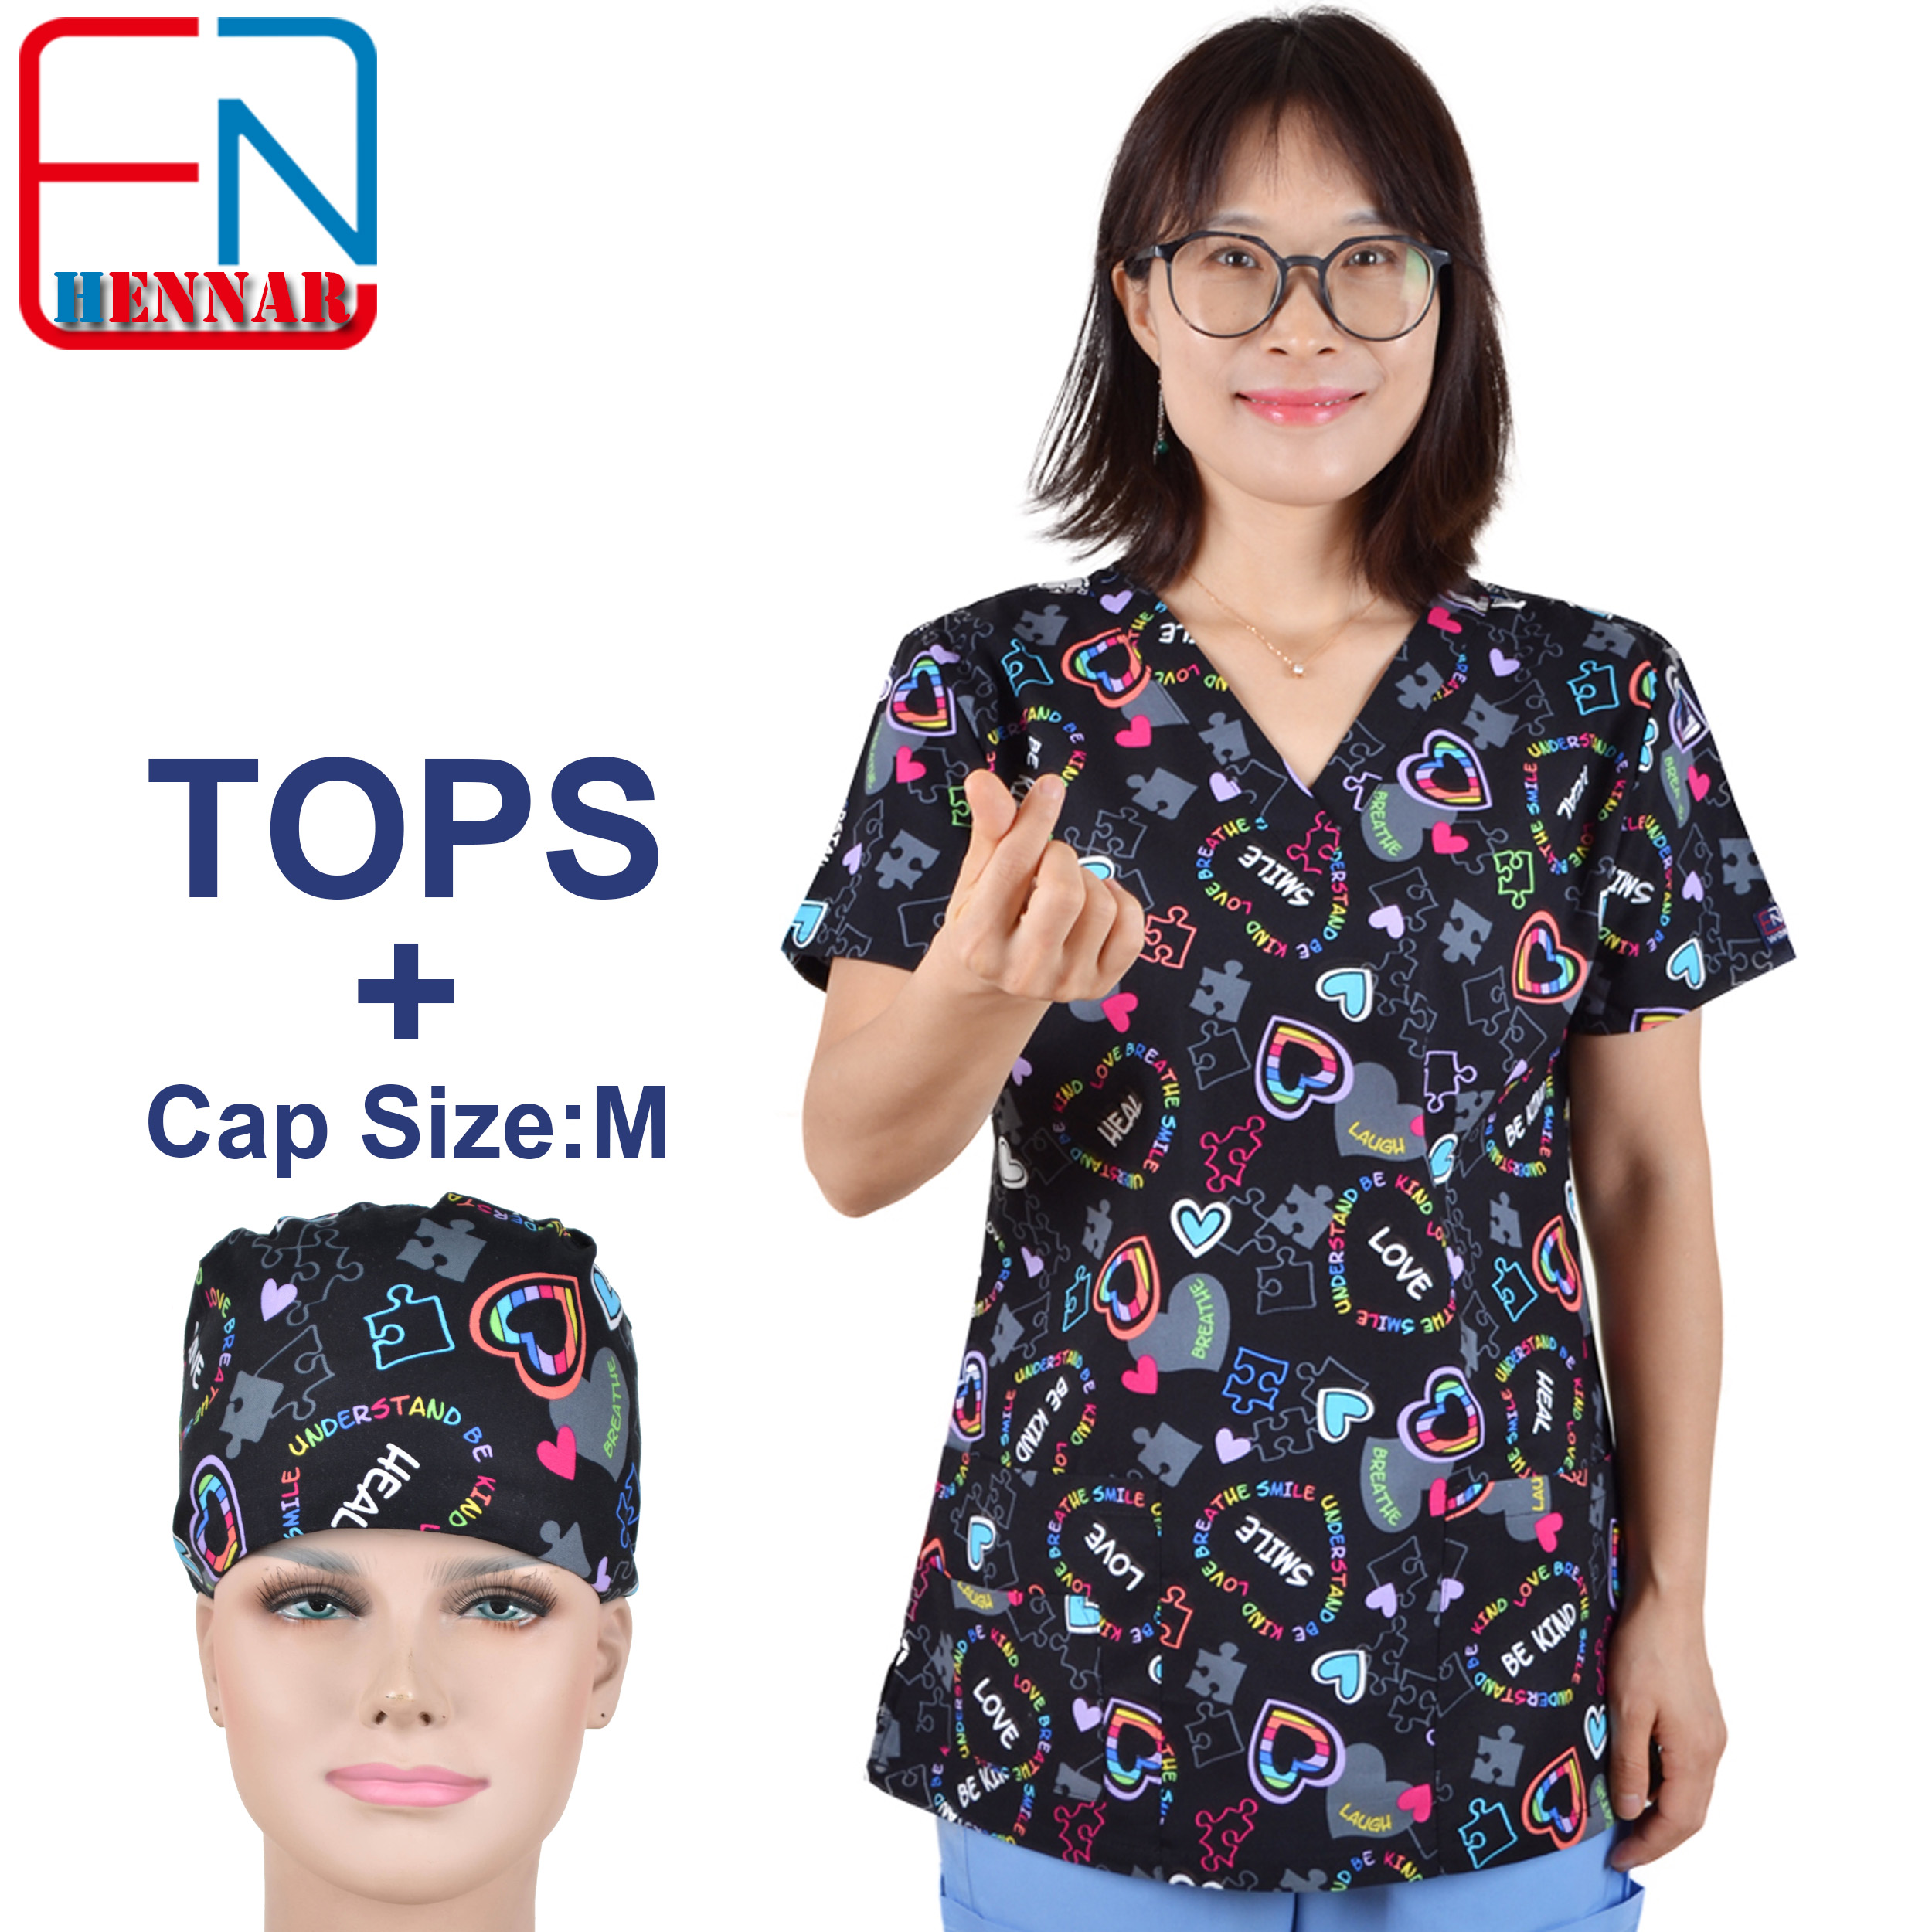 1907 NEW Hennar Medical Scrubs Nursing Scrubs Women Scrubs Nurse Medical Uniformes Medicos Para Mujer Scrub Tops+ Caps